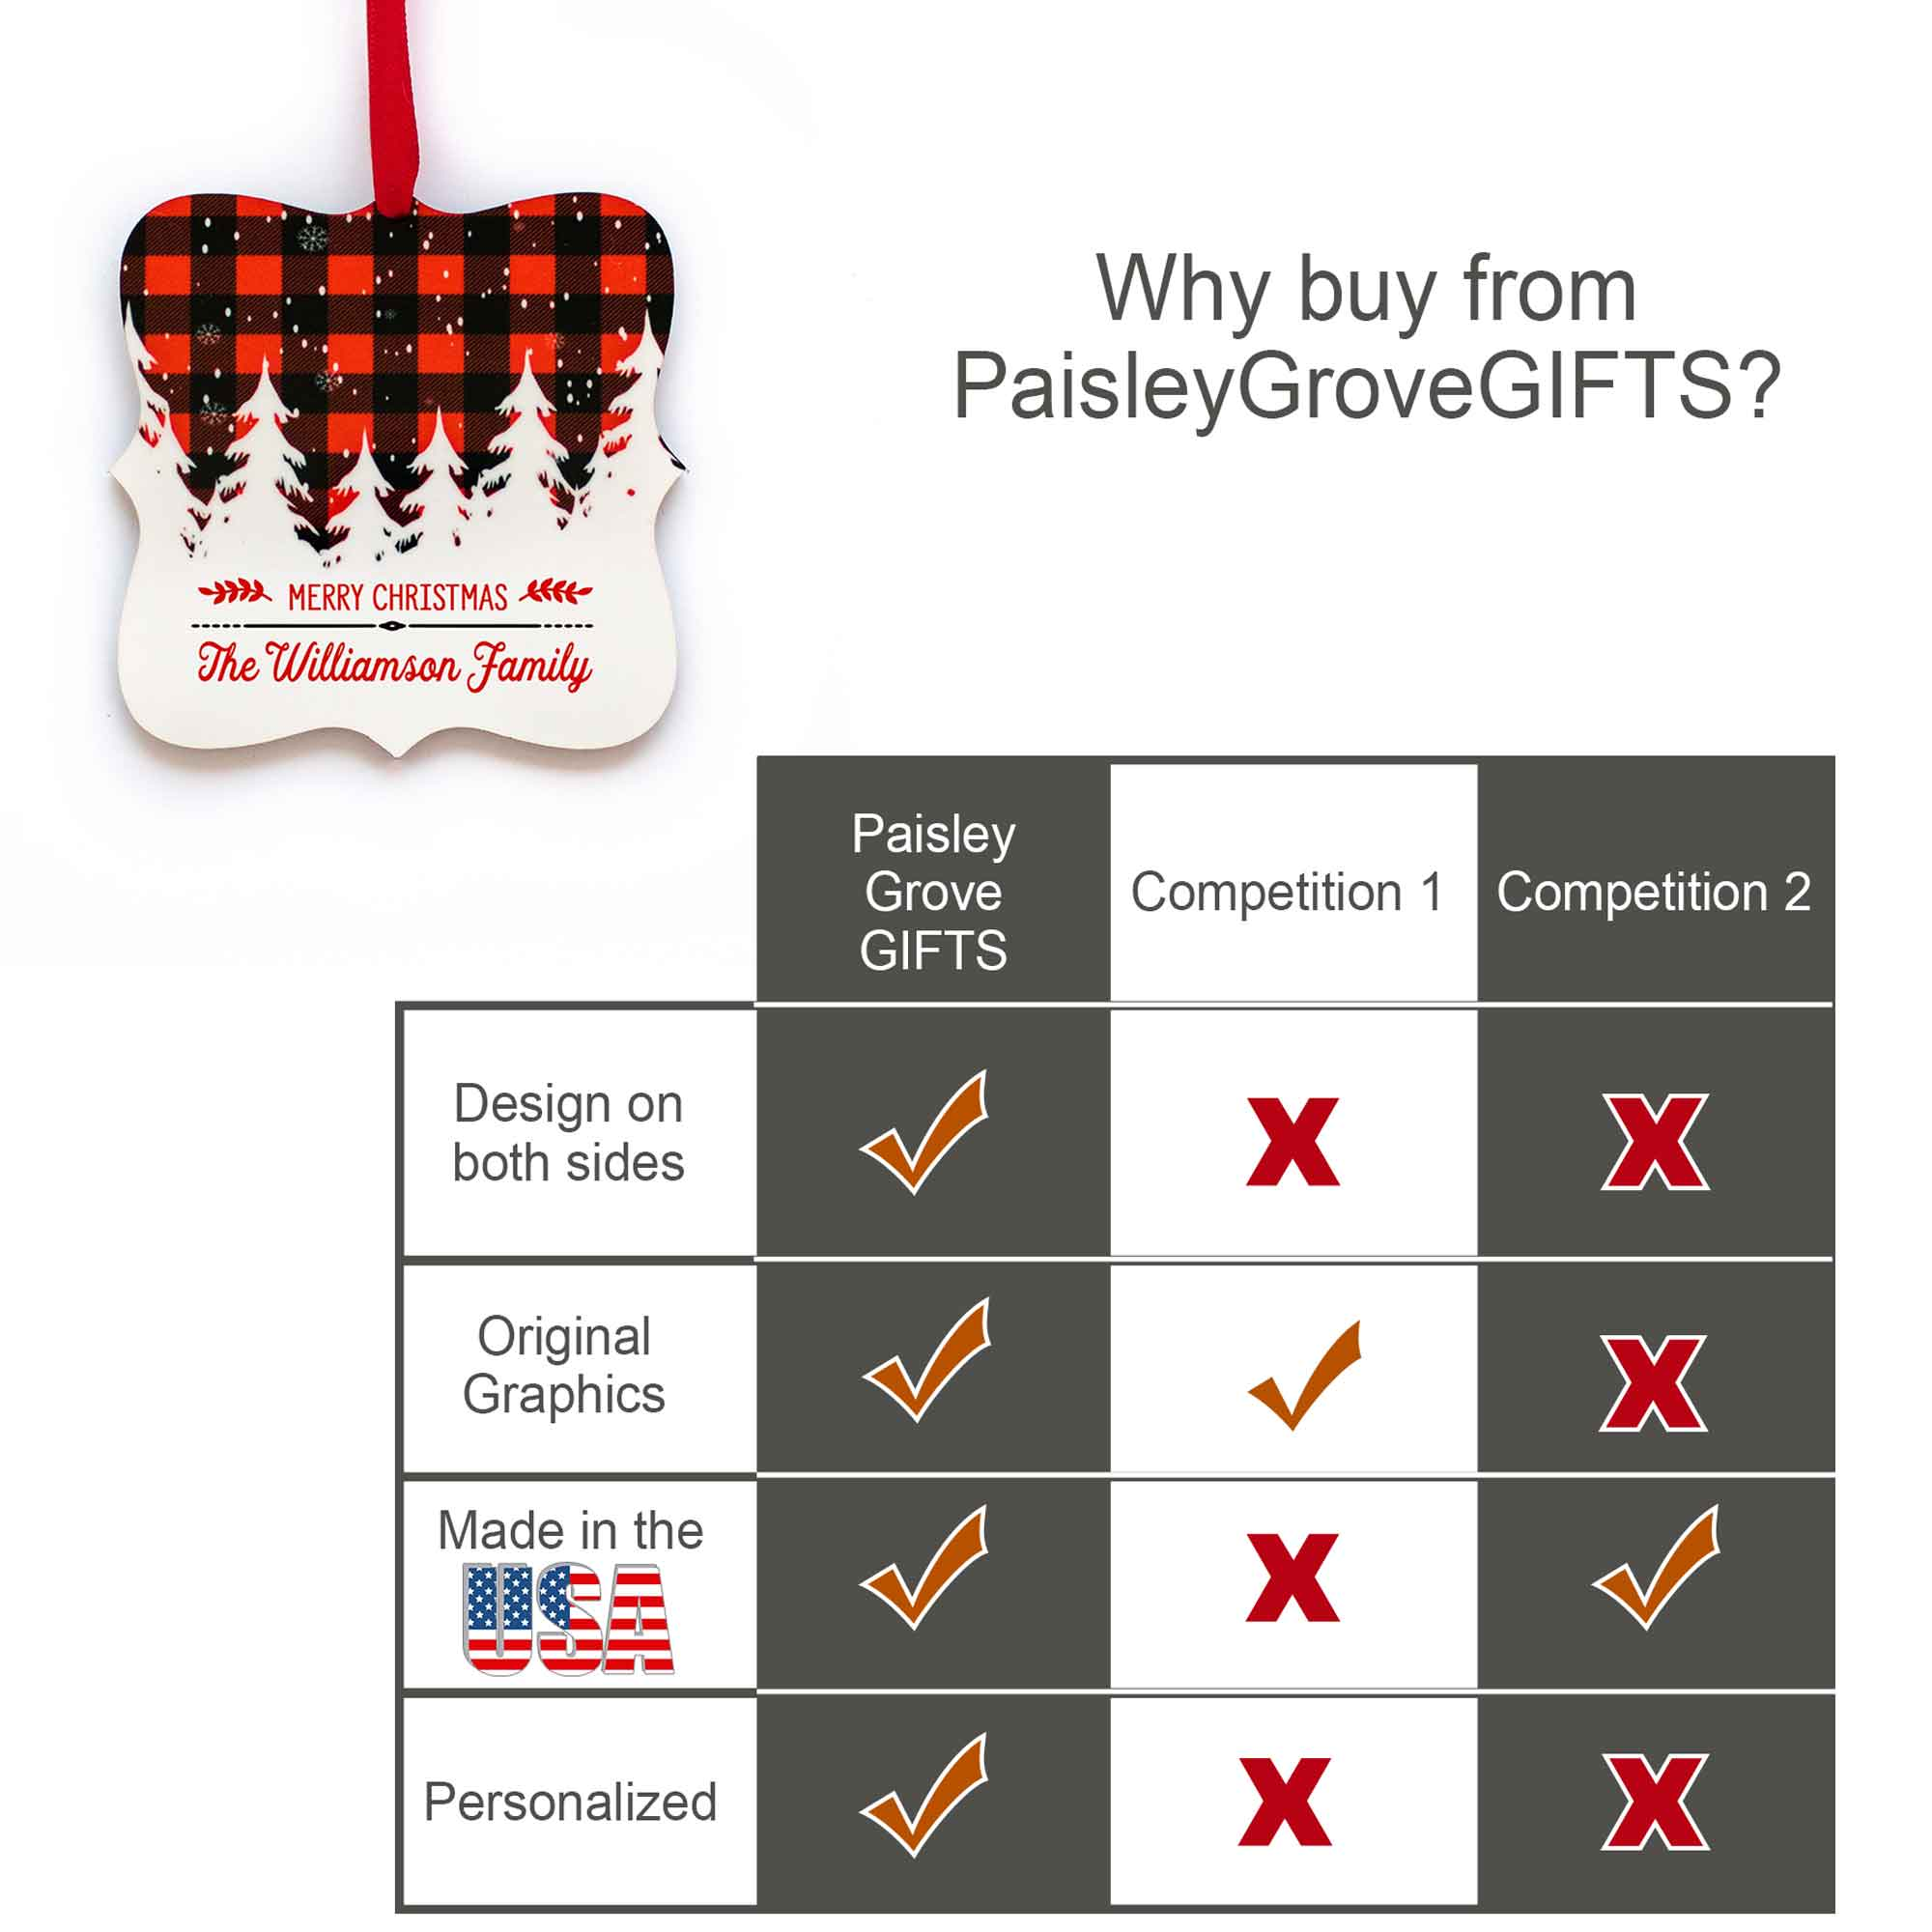 CopyrightPaisleyGroveGIFTS S502b Quality Ornament Superior to Others, Comparison Chart Personalized Last Name Ornament